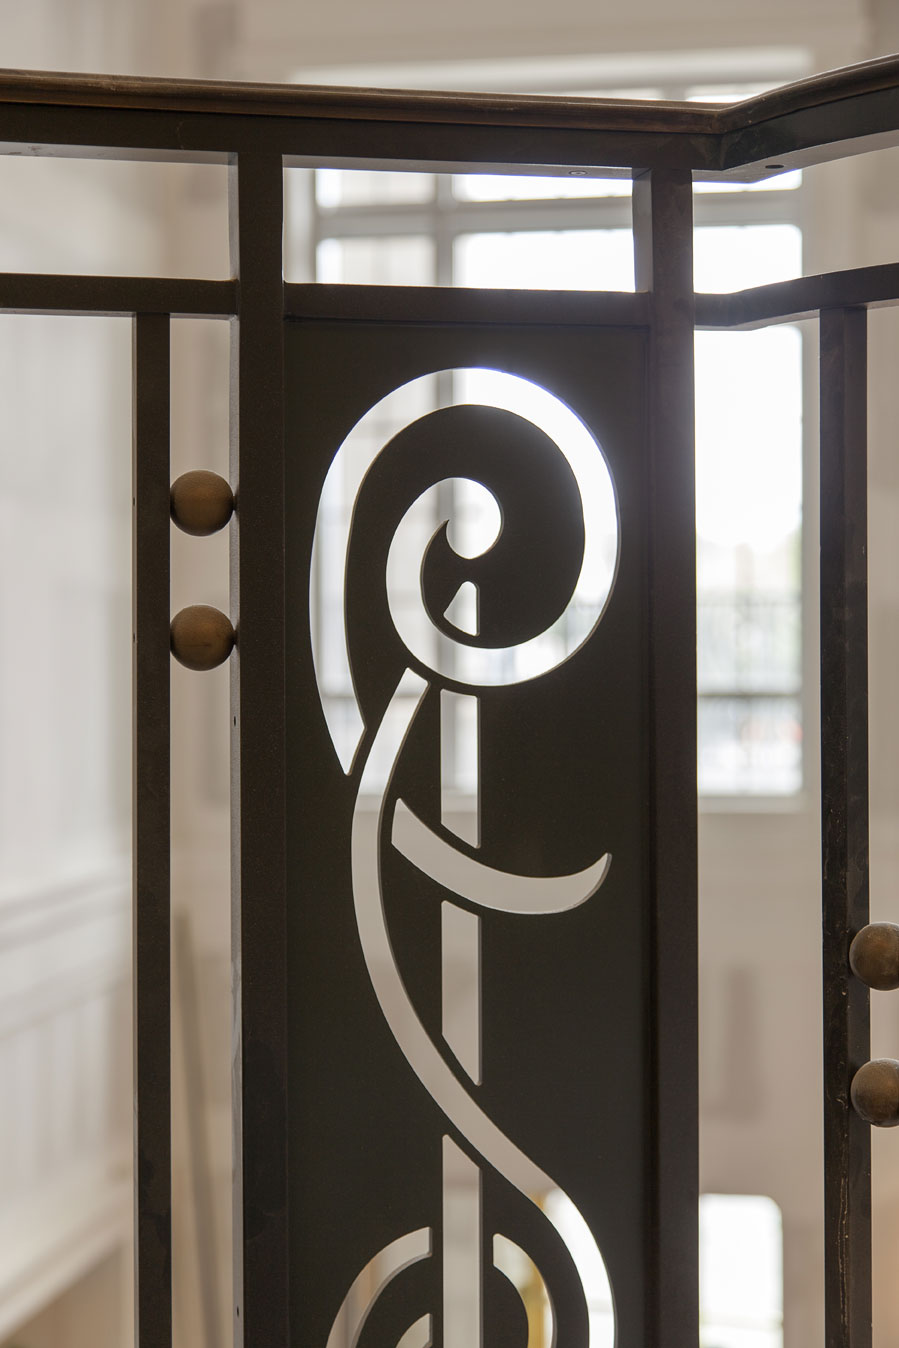 Base and treble clef notes inspired the railing designs, with much of the millwork sourced locally.